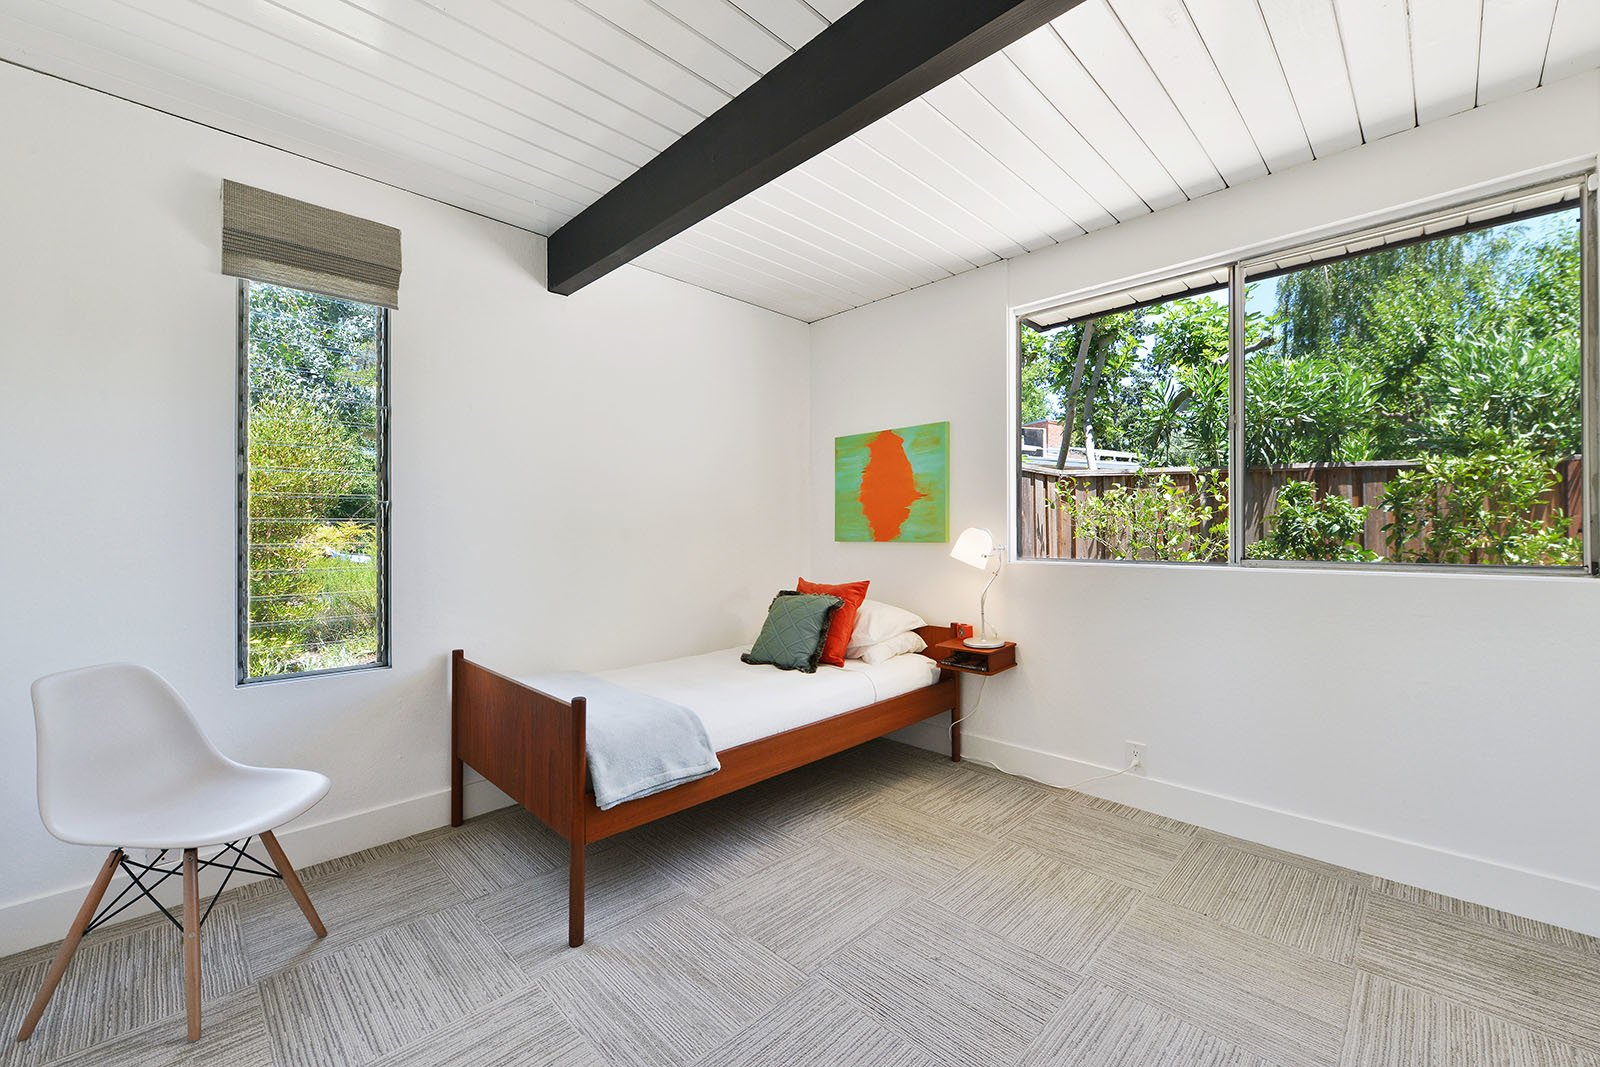 Photo 11 of 15 in An Enormous Bay Area Eichler Asks $1.45M